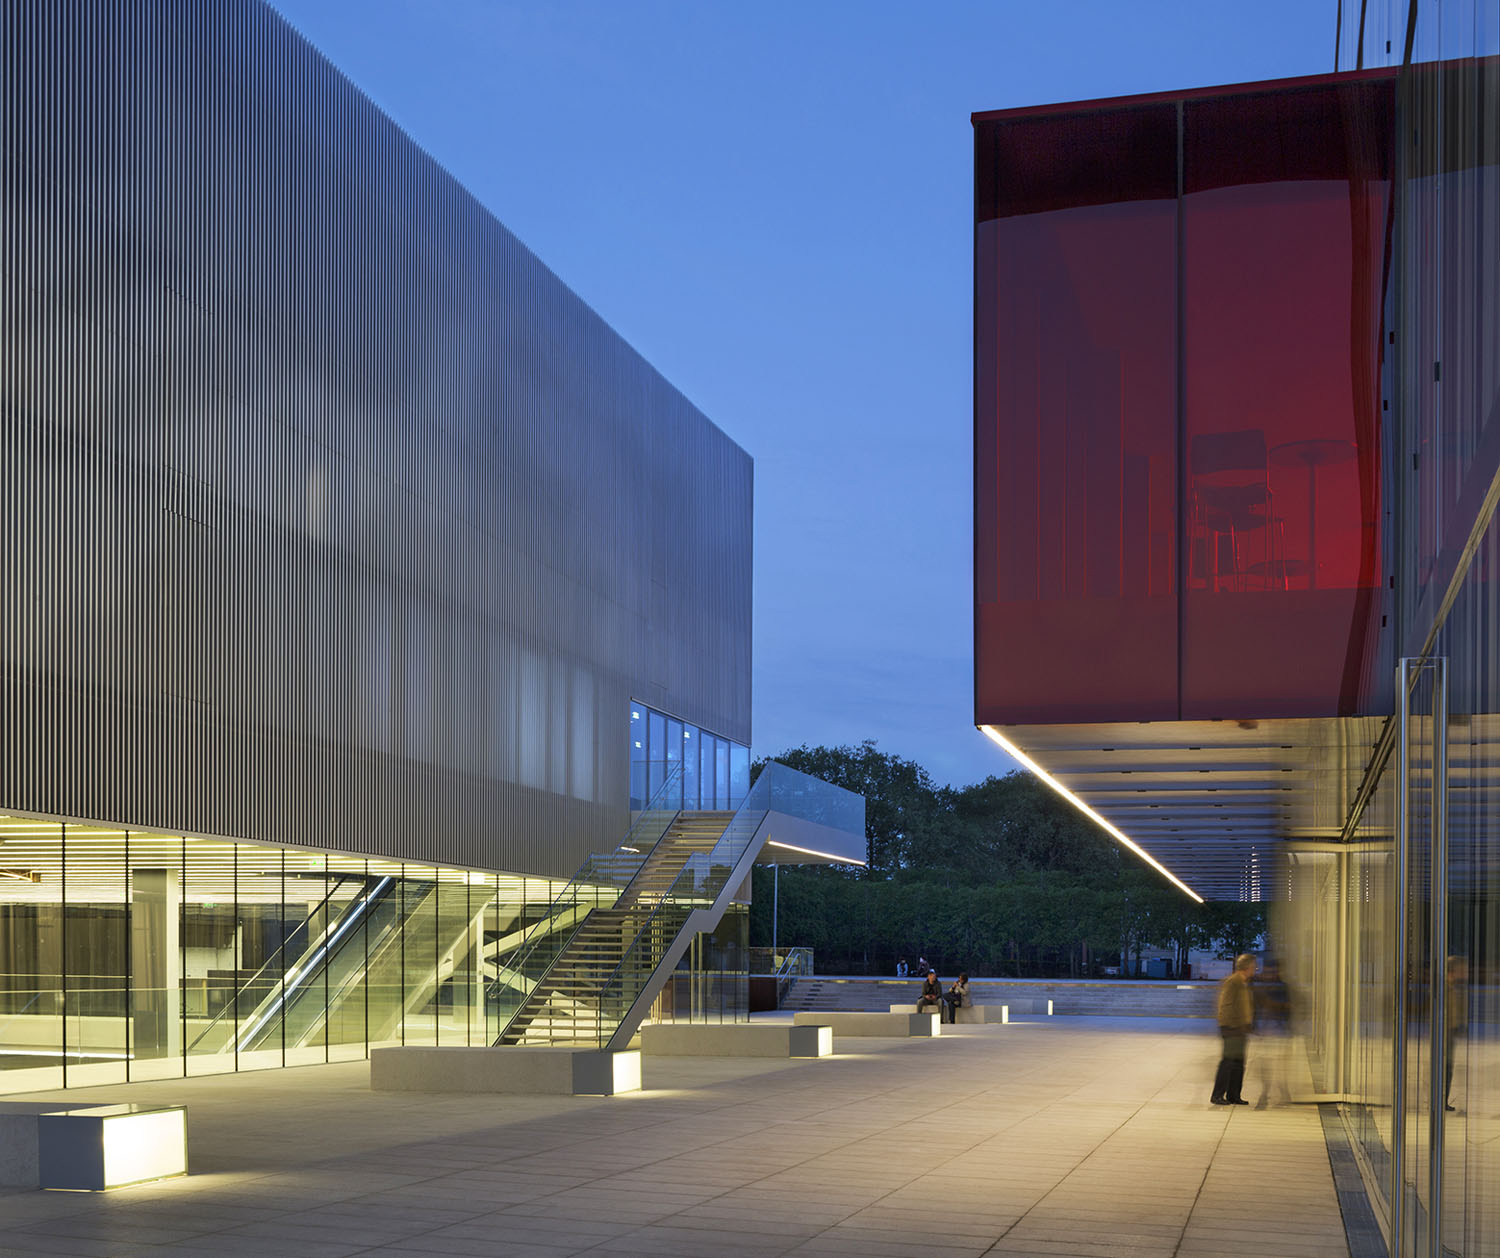 Les Quinconces Cultural Center design by Babin+Renaud